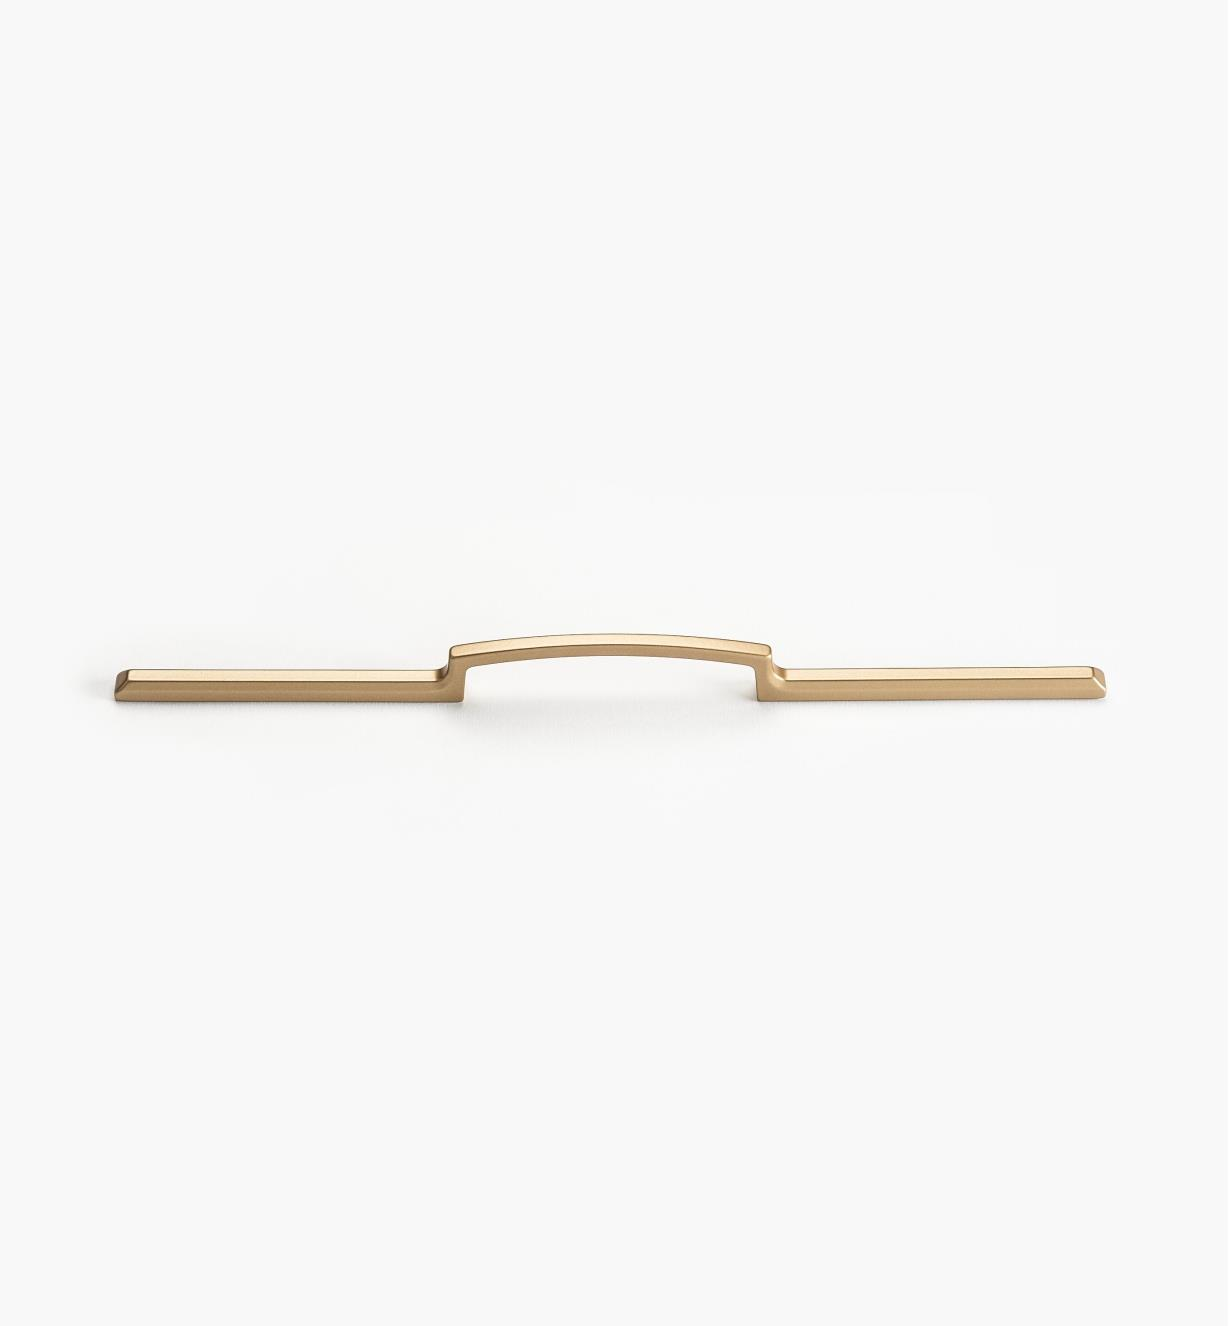 00W5546 - 128mm/320mm (340mm) Satin-Gold Eclett Handle